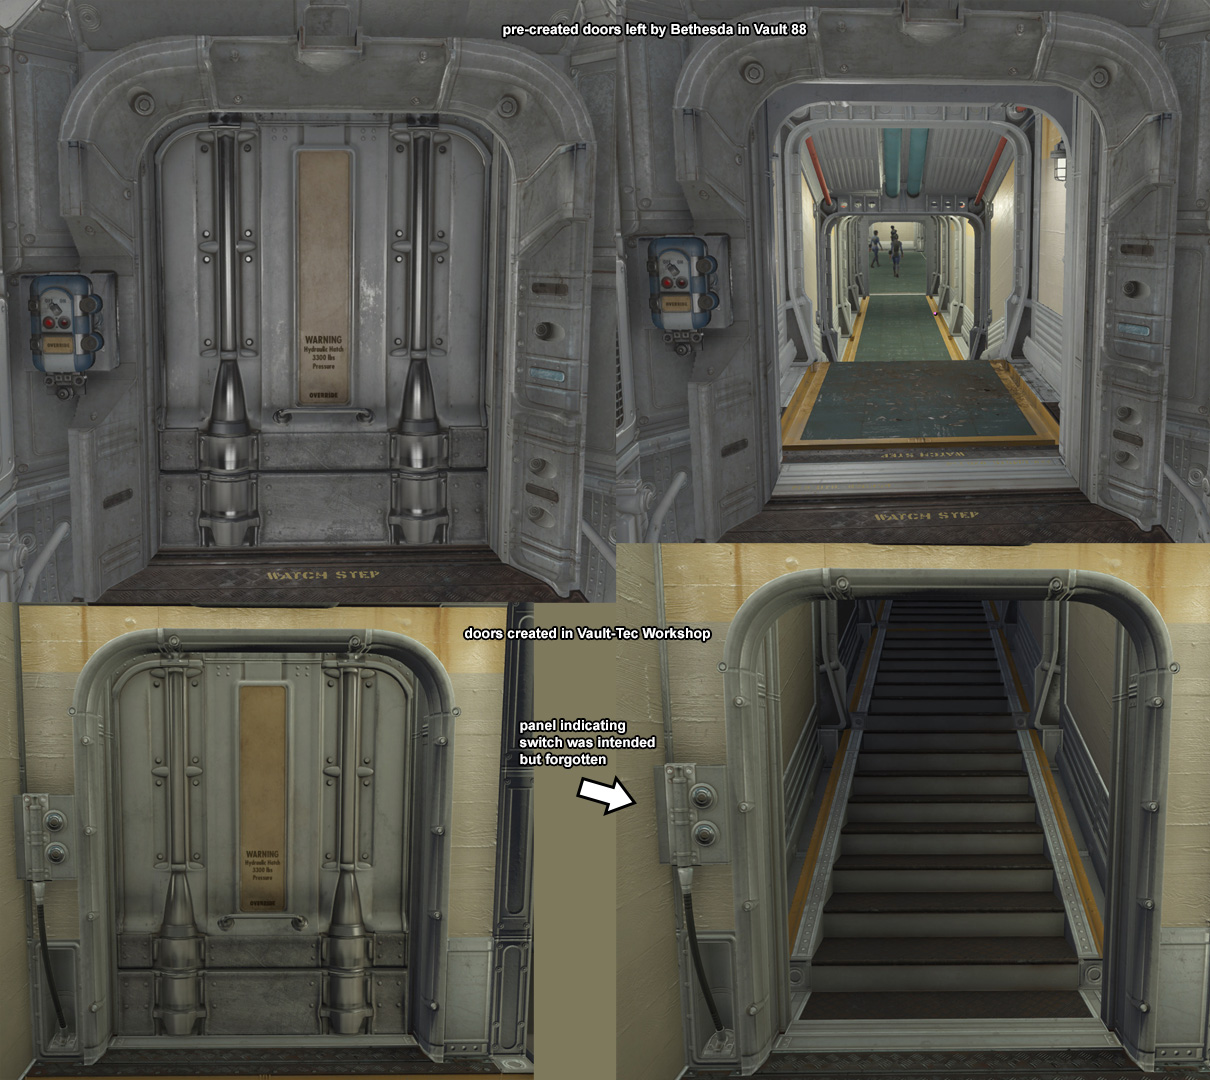 The door panels have placeholders for the panels on the left side of the door on each side (e.g. opposite sides). This leads one to believe that Bethesda ... & Vault 88 Door Switch Fix - Override Boxes added at Fallout 4 Nexus ...